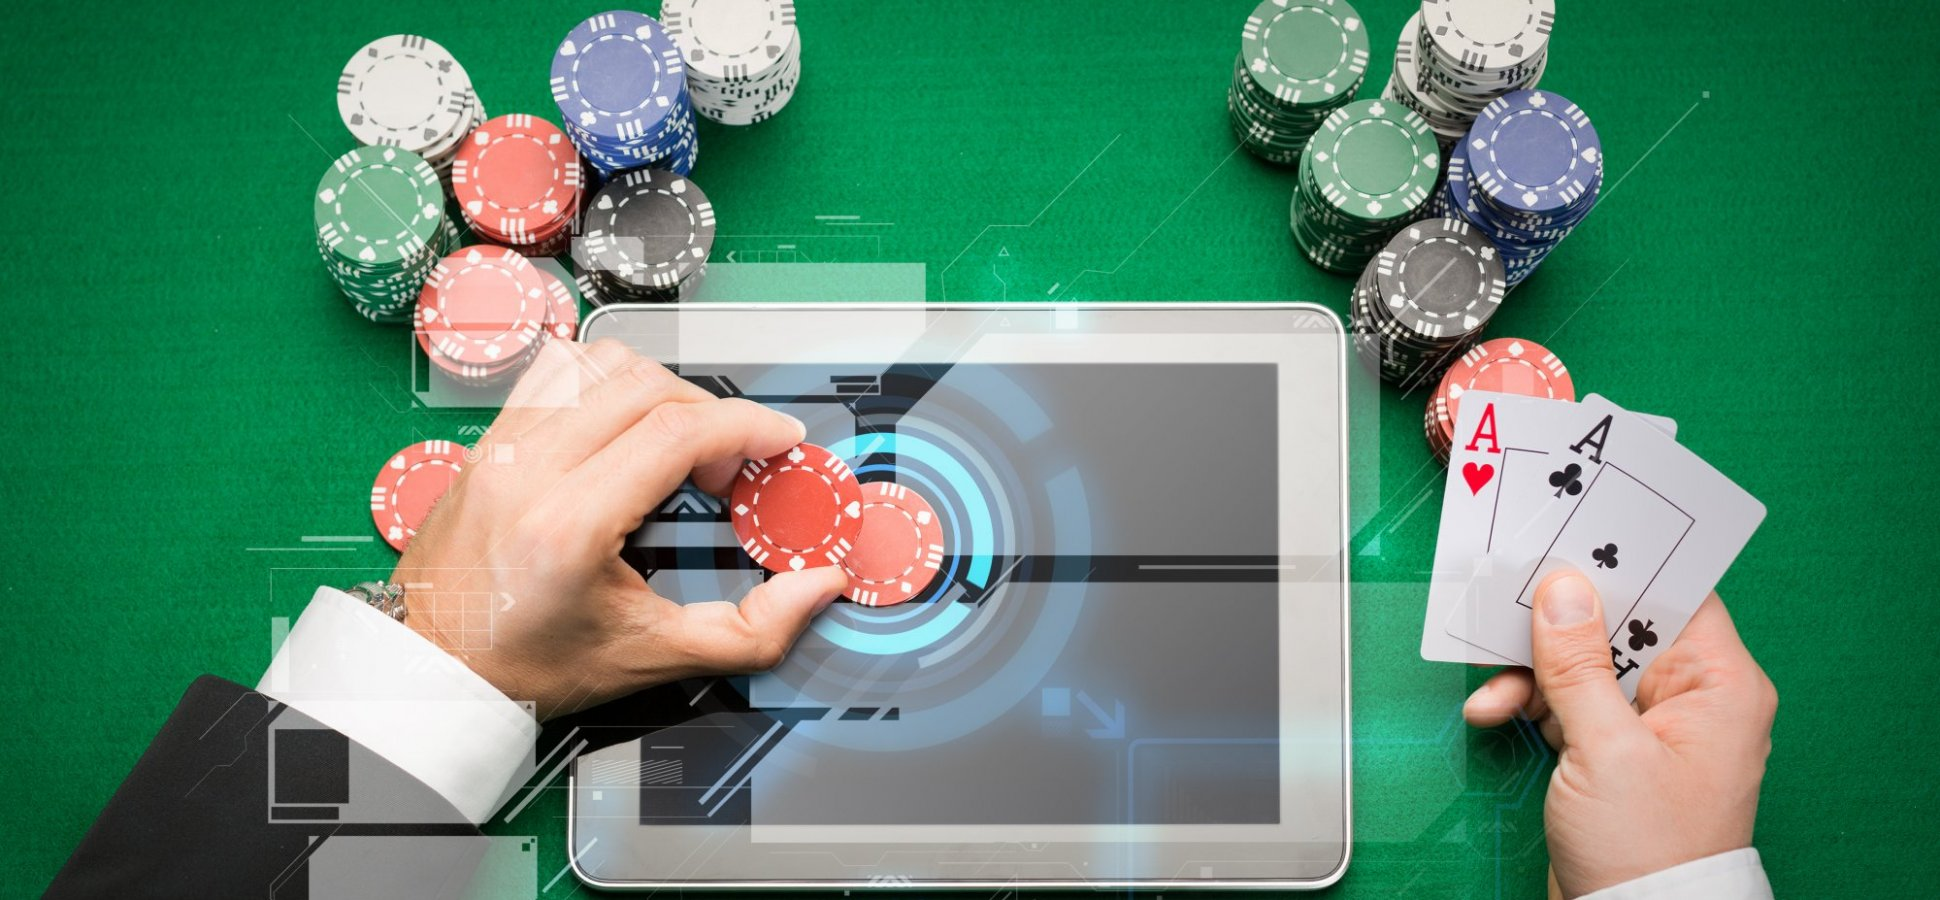 Best Way to Get an Online Casino Site